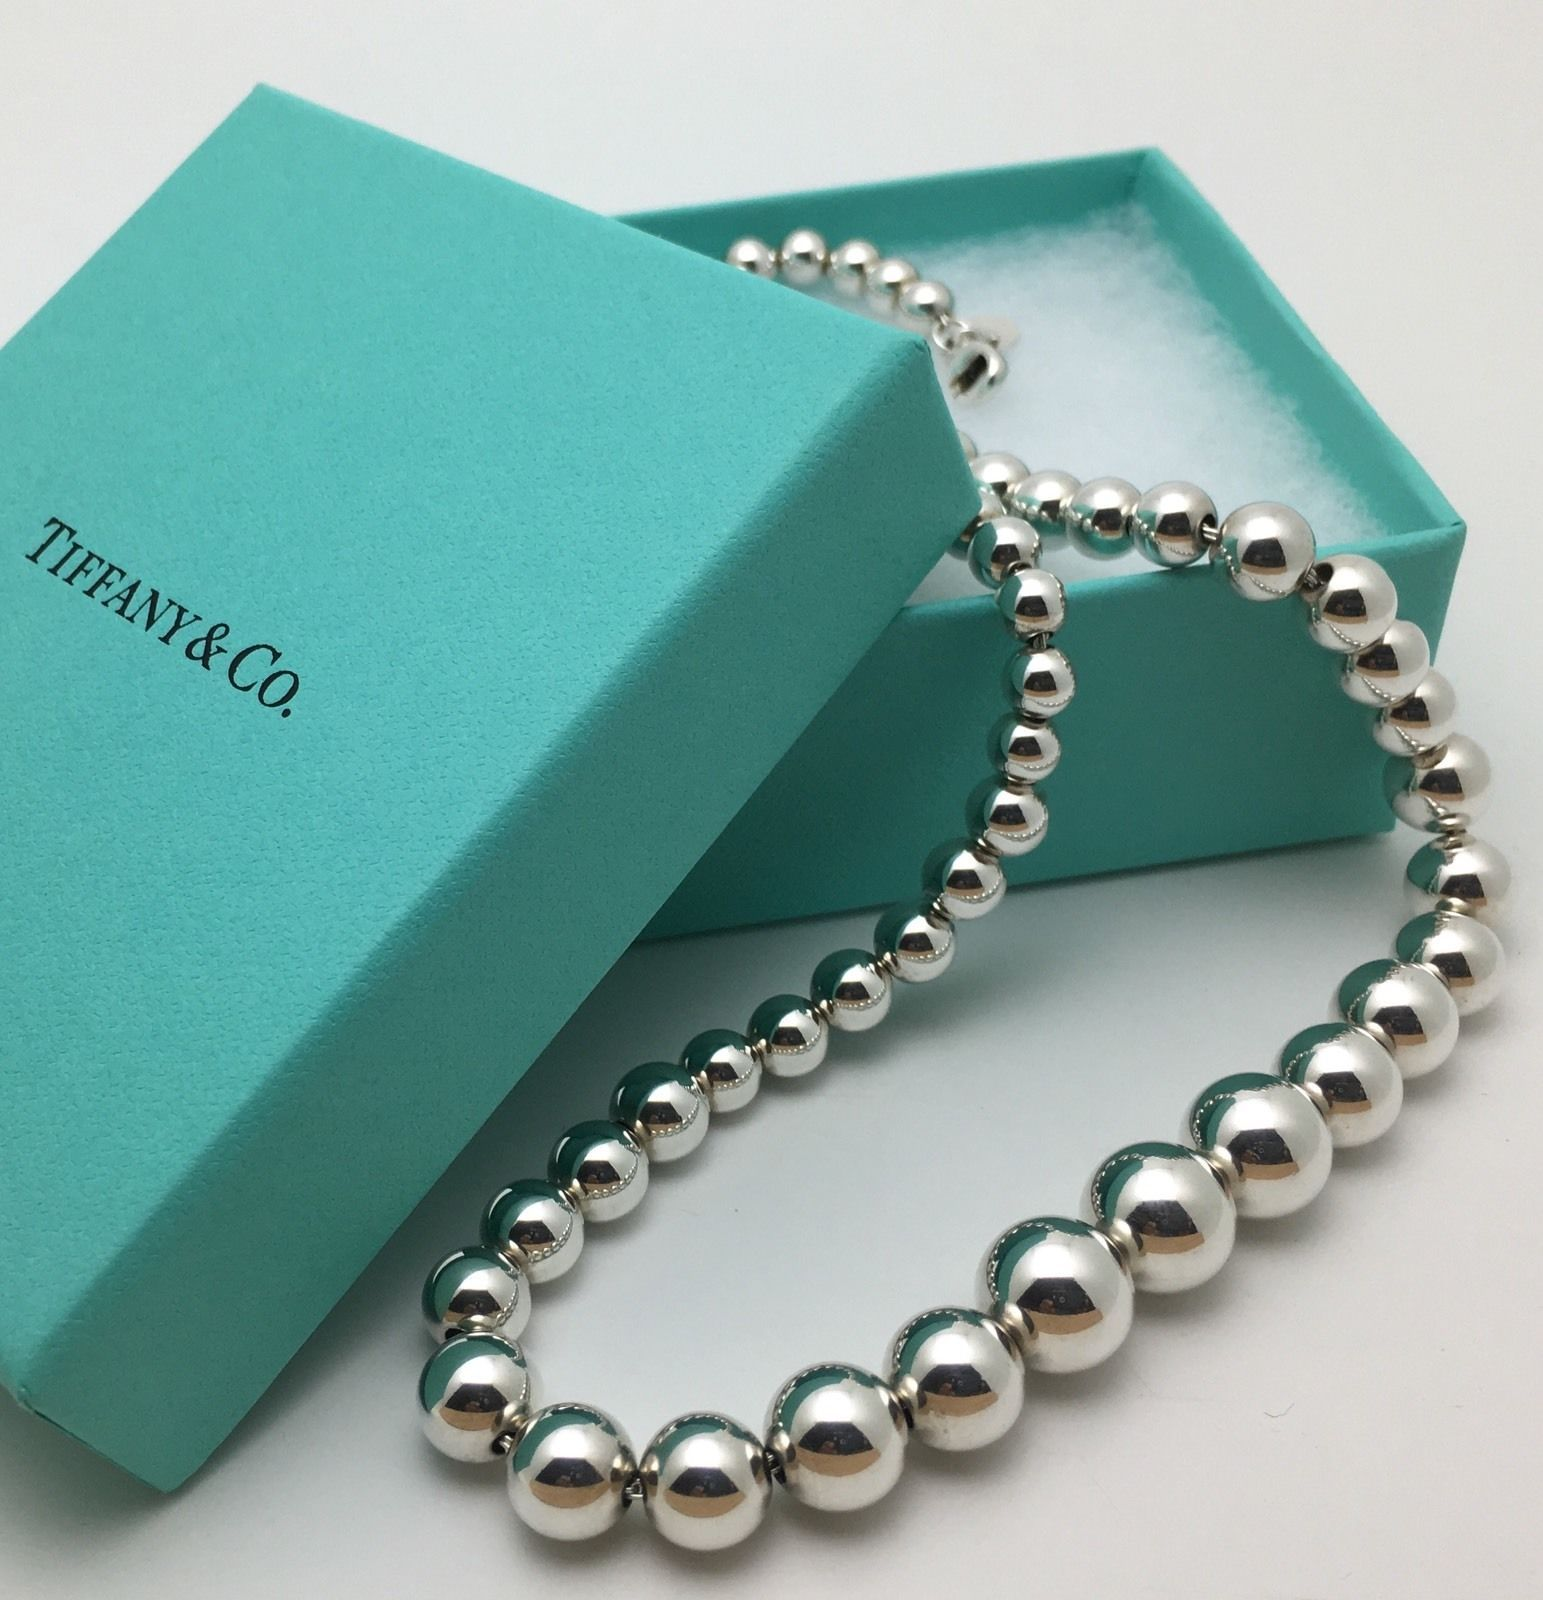 Tiffany Co Sterling Silver Bead Ball And 50 Similar Items